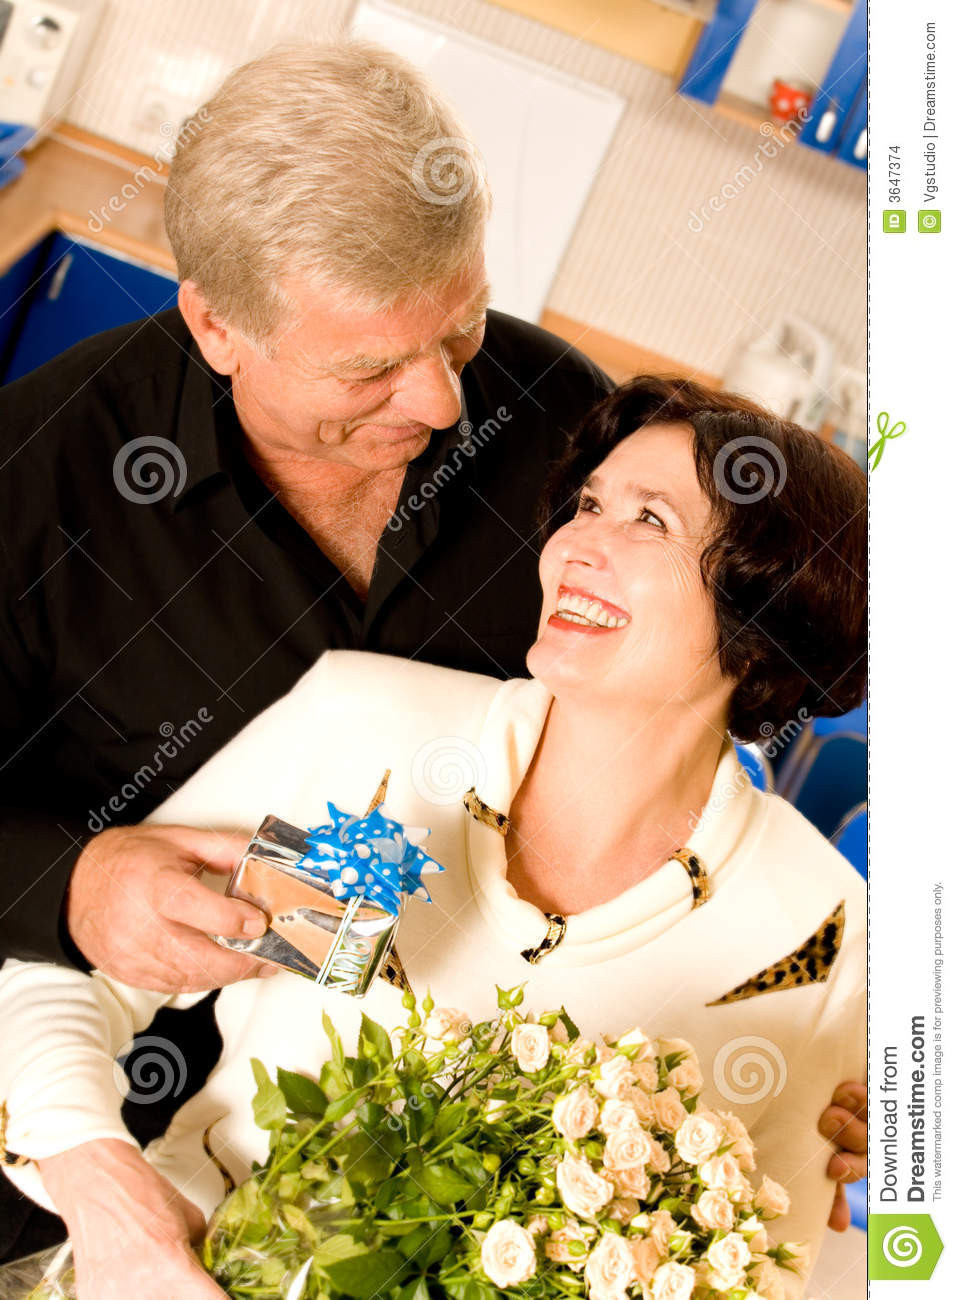 Best ideas about Gift Ideas For Older Couples . Save or Pin Mature Couple With Gifts Stock Image Now.